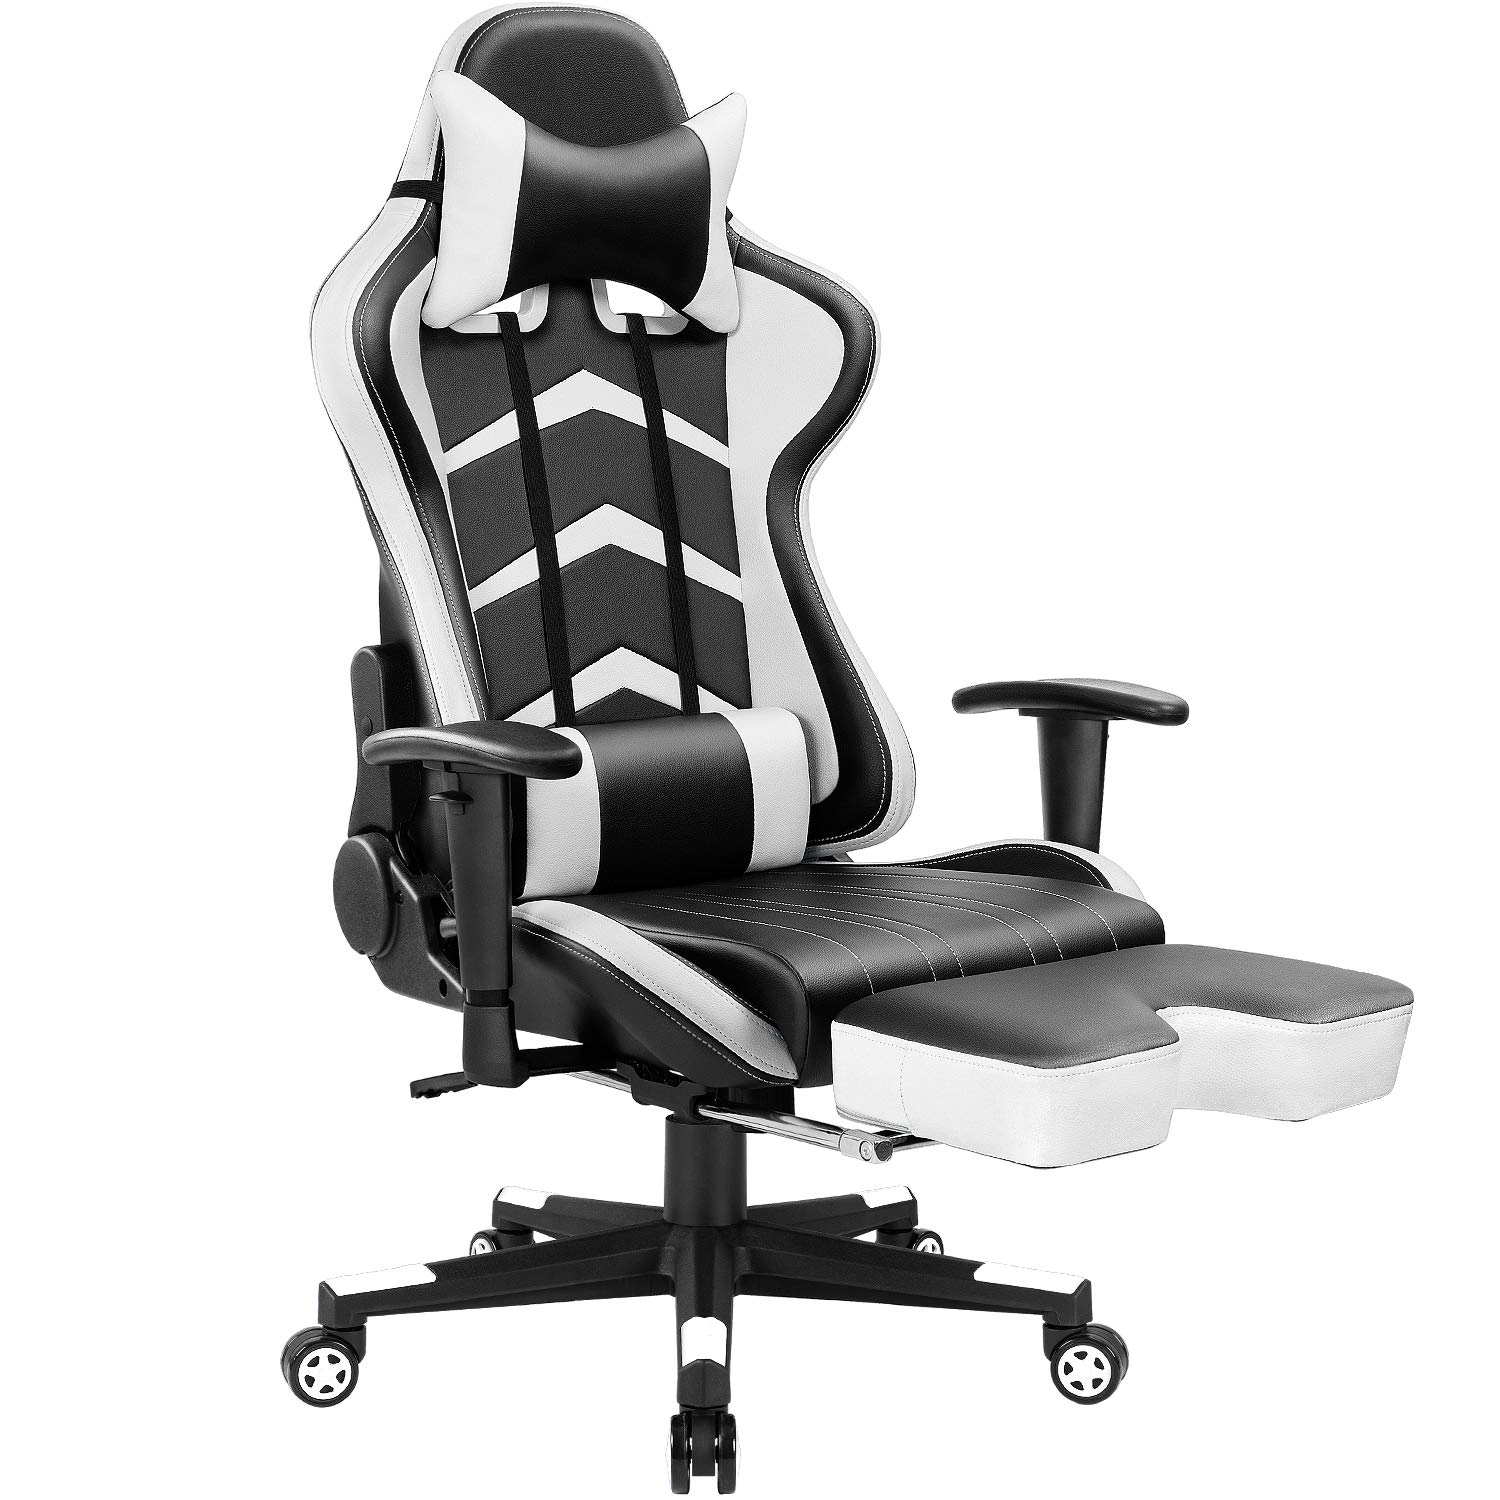 Furmax Gaming Chair High Back Racing Chair,Ergonomic Swivel Computer Chair Executive Leather Desk Chair with Footrest, Bucket Seat and Lumbar Support (White)